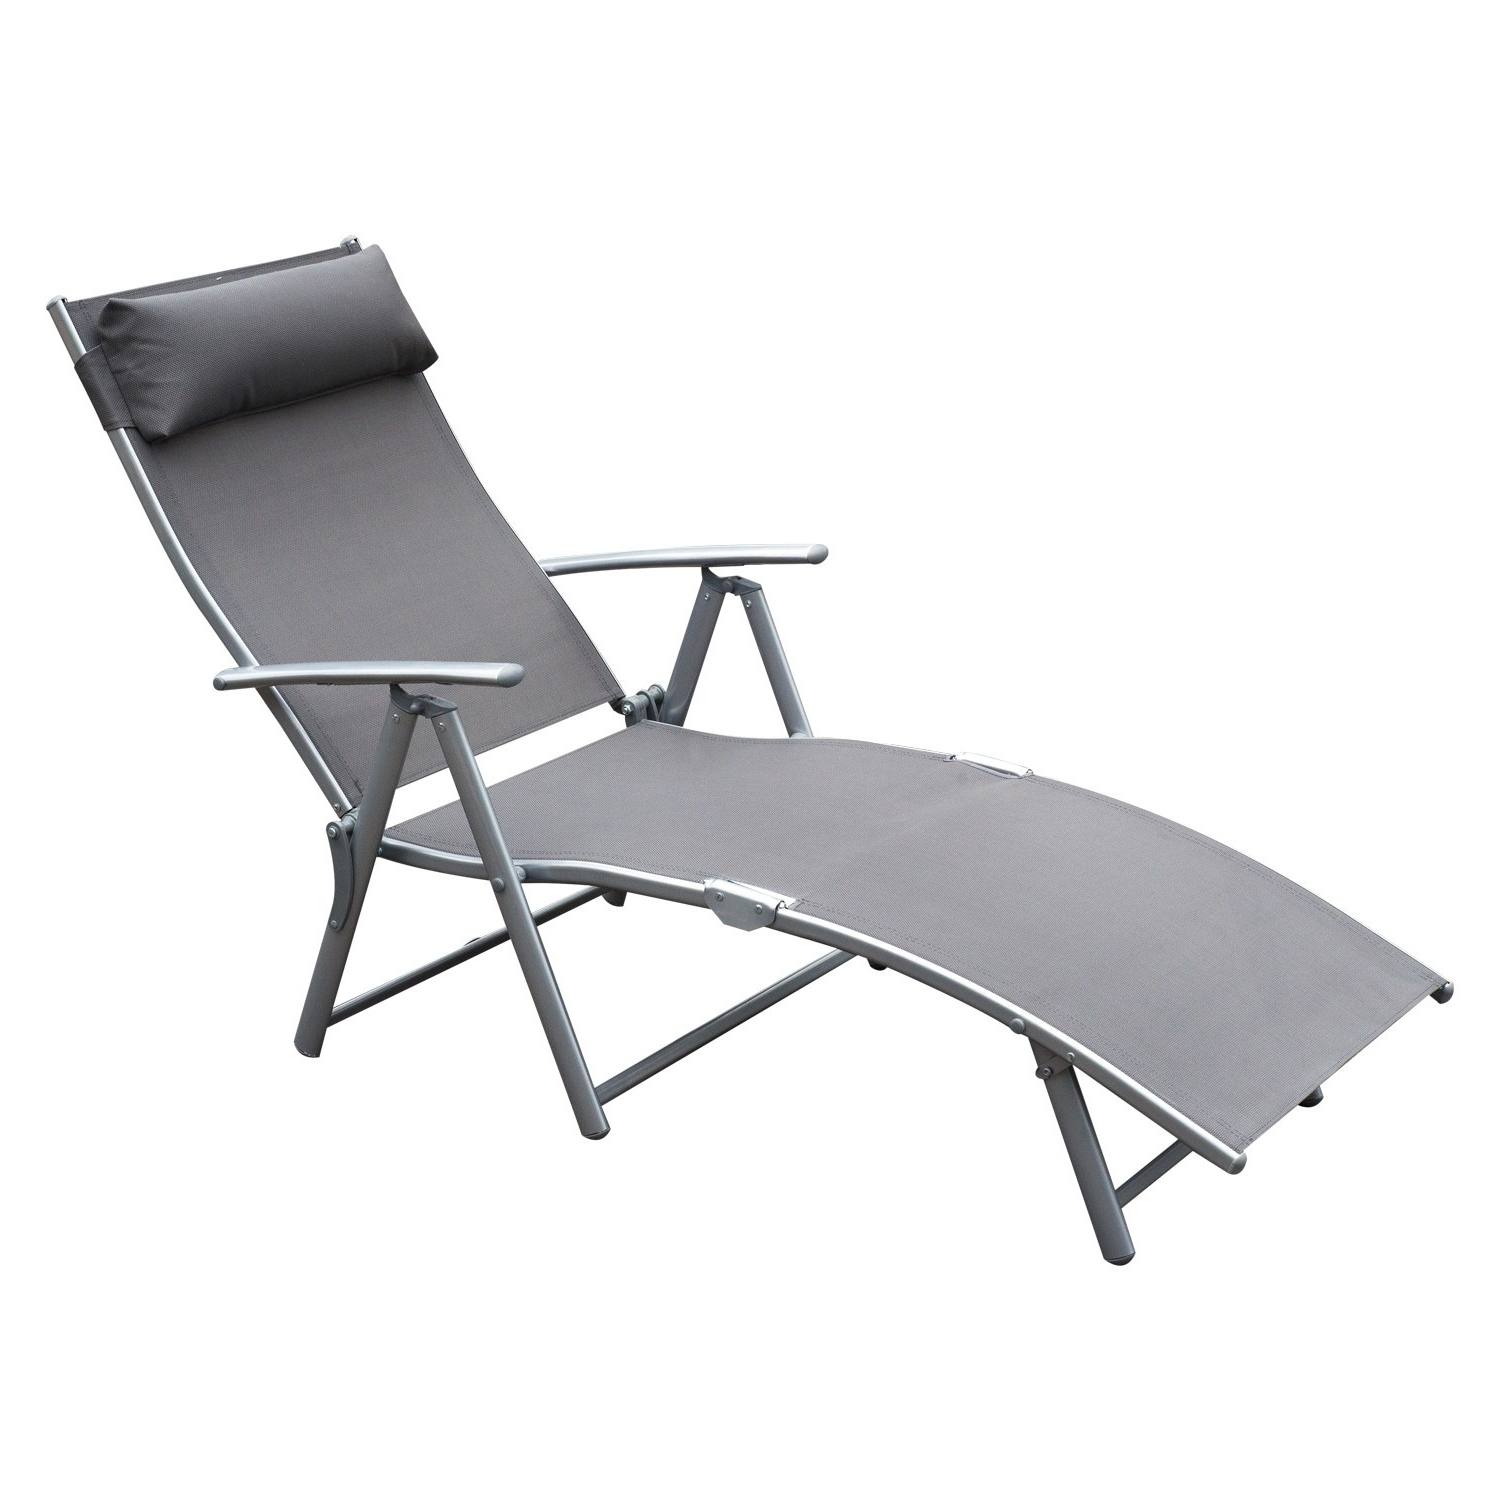 Outdoor : Target Lounge Chairs Folding Lounge Chair Target Outdoor Throughout Most Popular Chaise Lounge Chairs At Target (View 10 of 15)